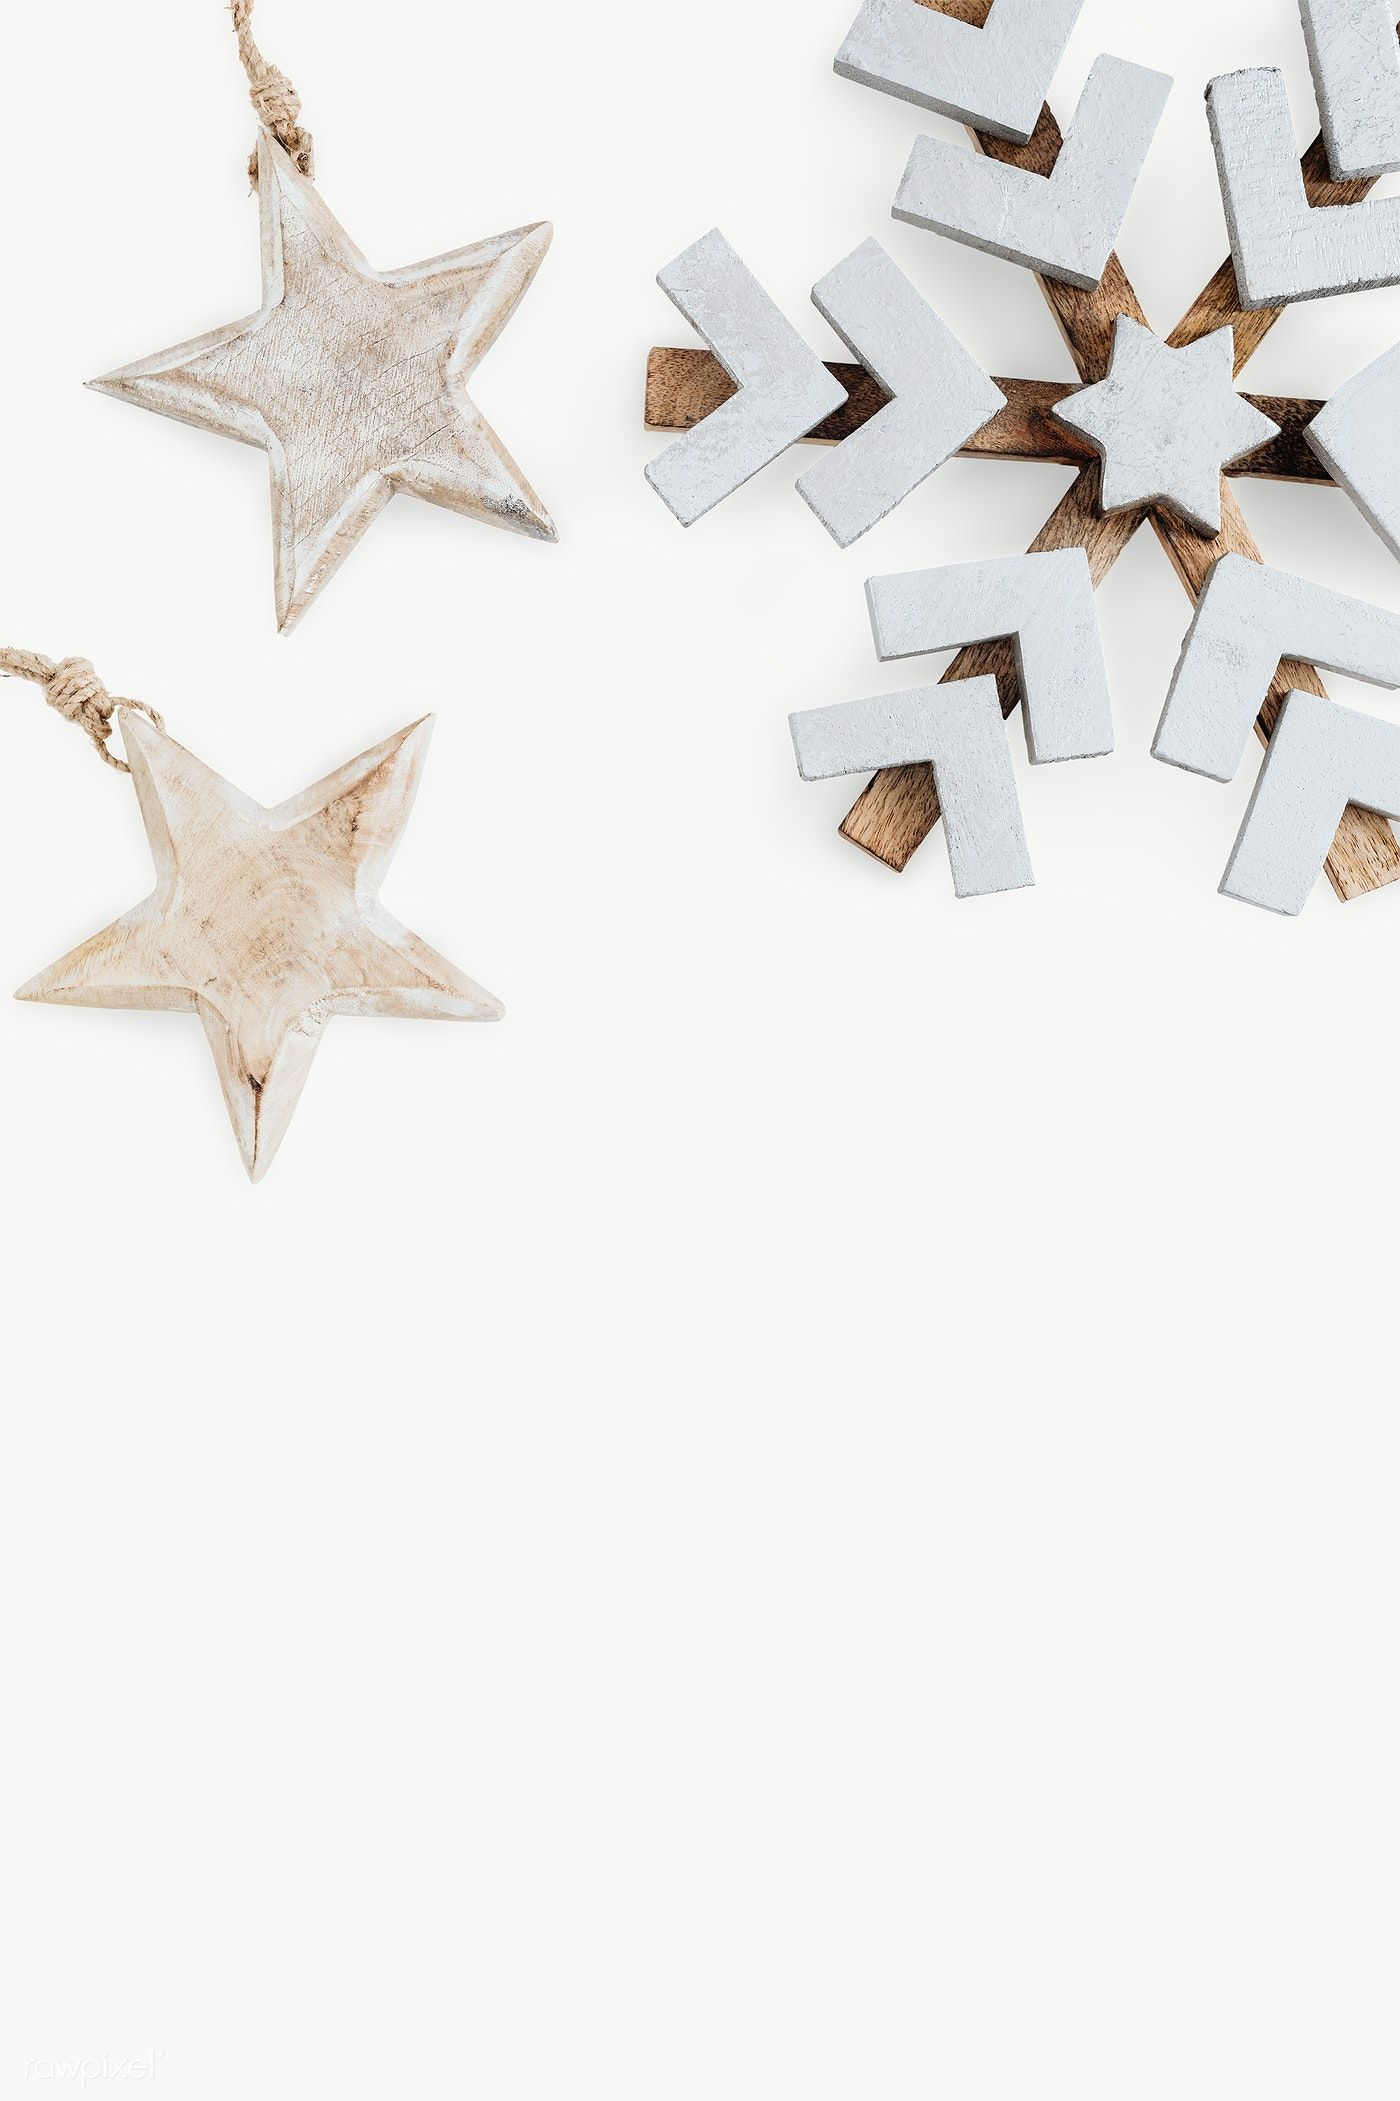 Download Premium Png Of Wooden Snowflake And Stars Background Transparent Wooden Snowflakes Snowflake Background Christmas Ornament Frame